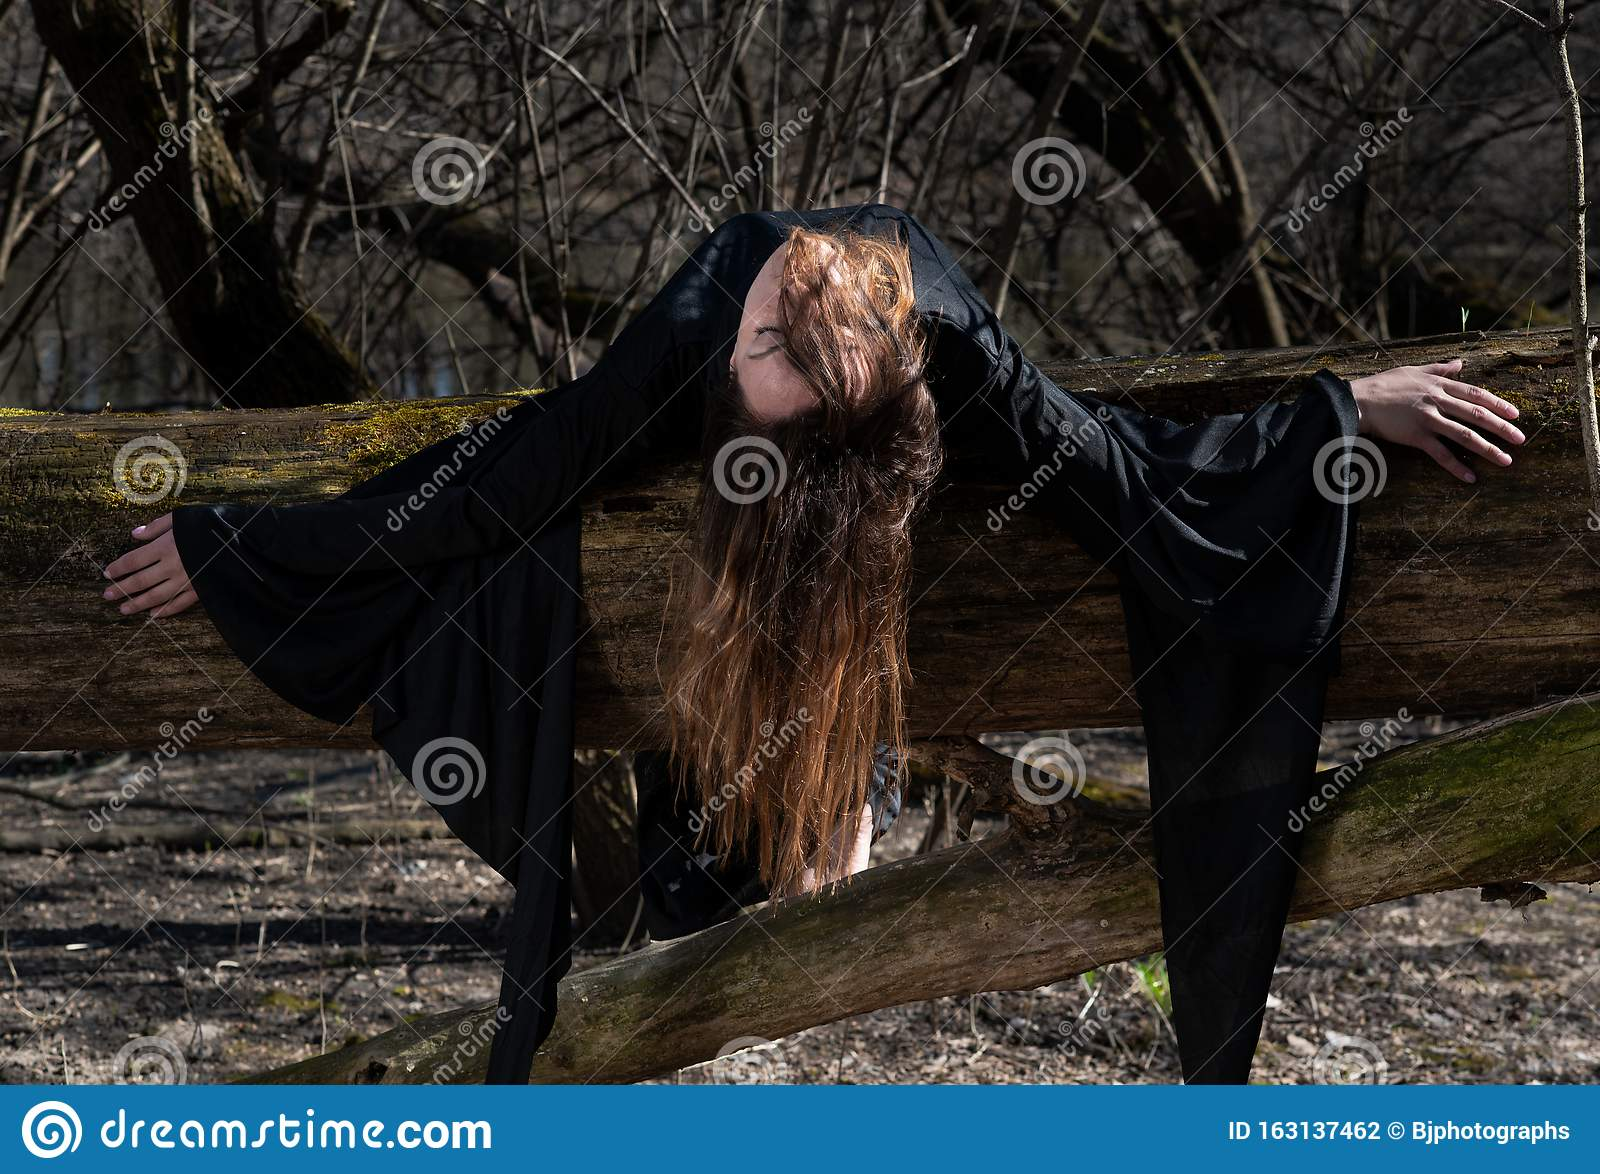 Woman With Dark Long Hair In Black Robes Hanging On Tree Branches In The Middle Of The Forest Back To Nature Concept Witch Stock Photo Image Of Fantasy Concept 163137462